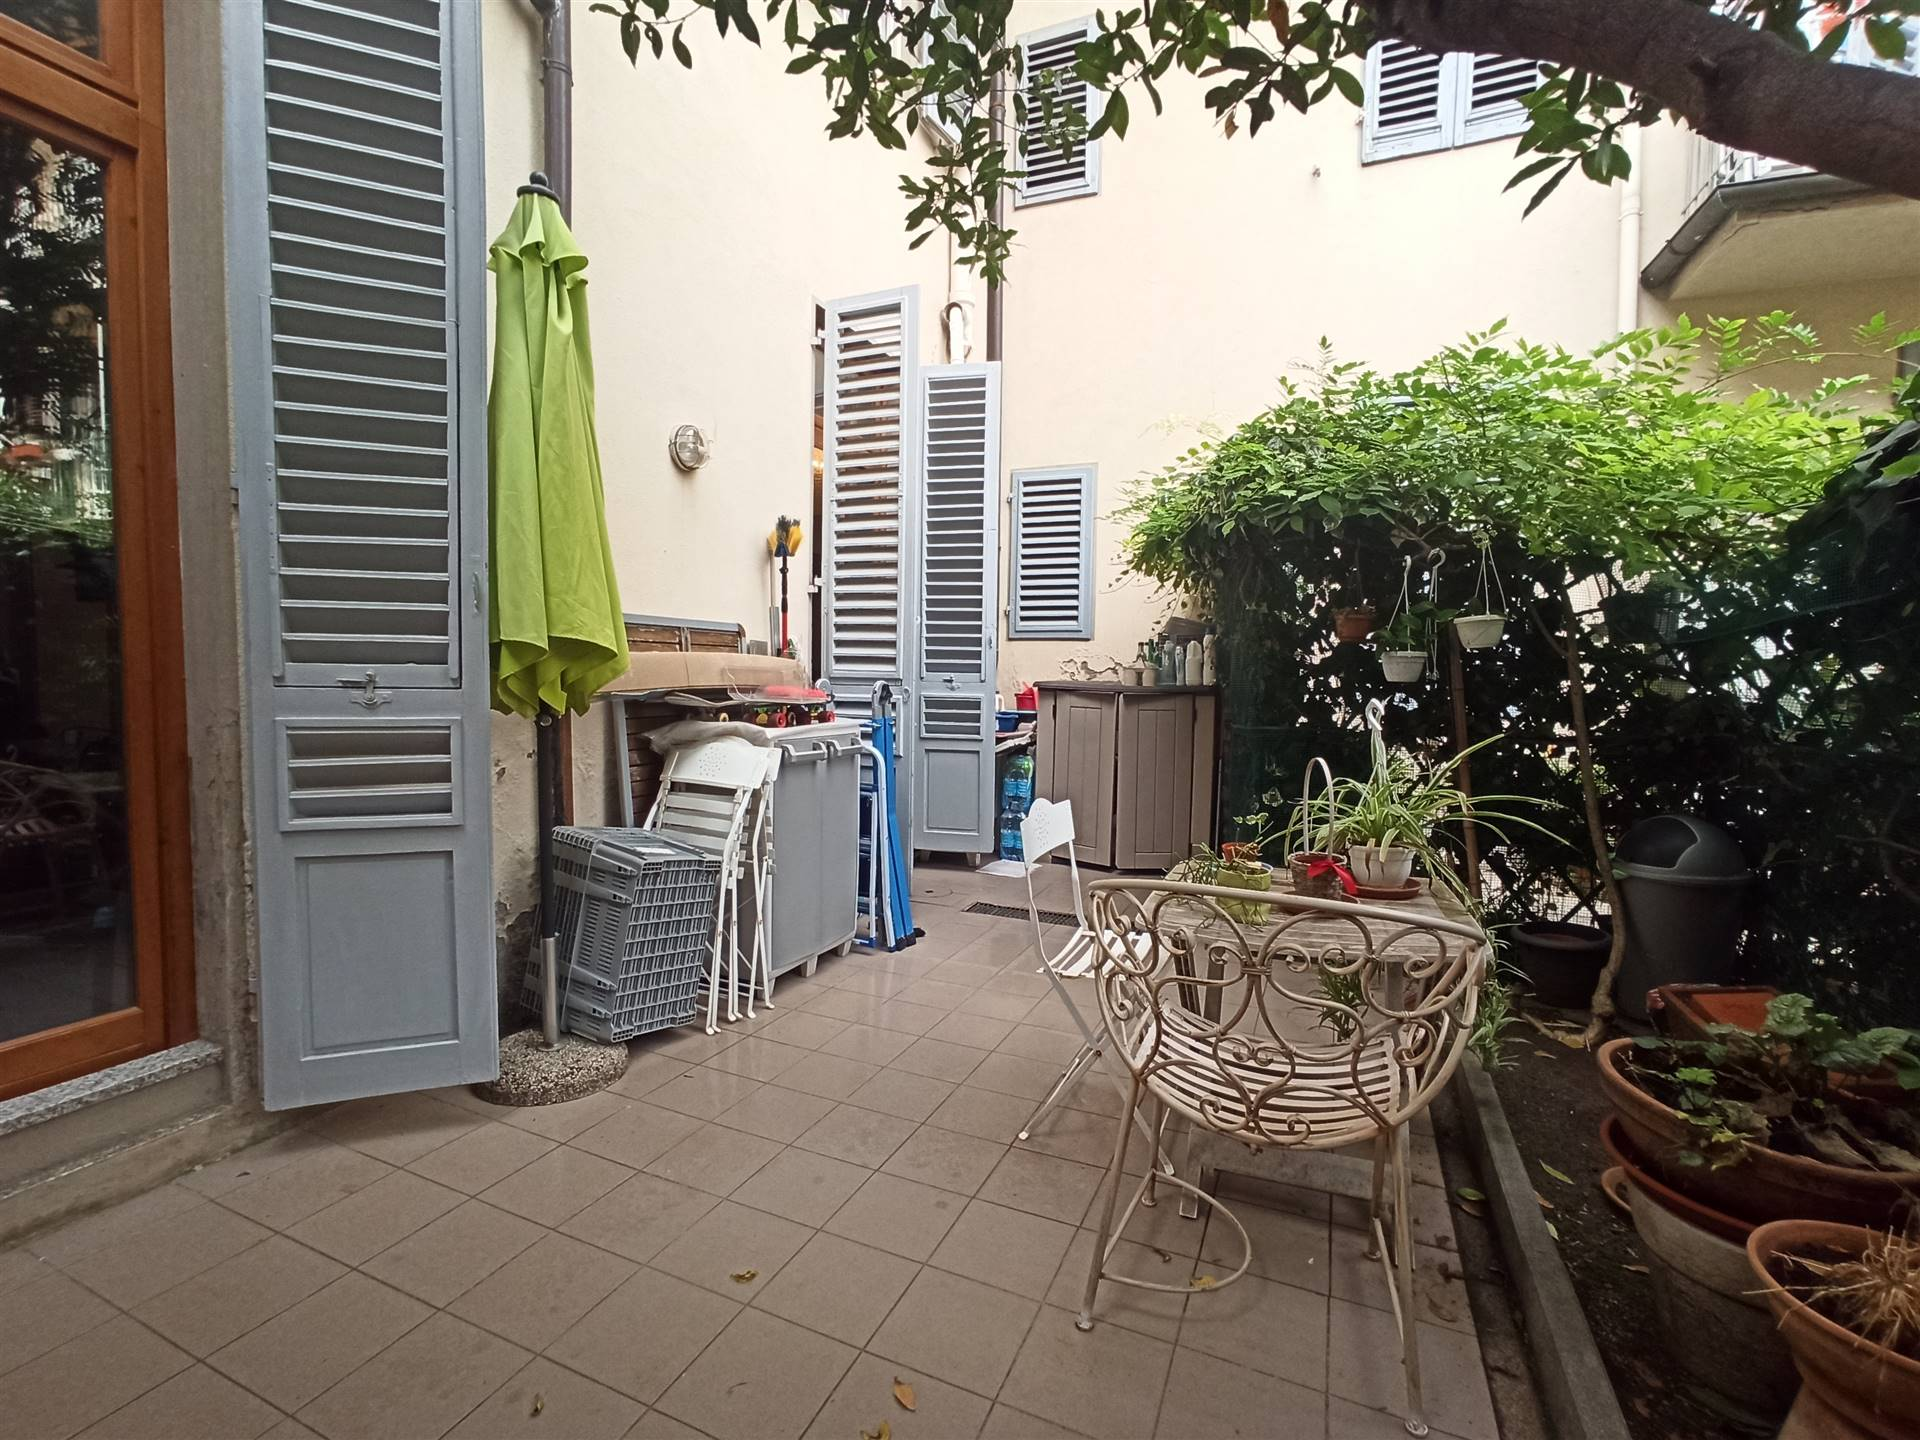 STATUTO, FIRENZE, Apartment for sale, Good condition, Heating Individual heating system, Energetic class: G, Epi: 352,649 kwh/m2 year, placed at